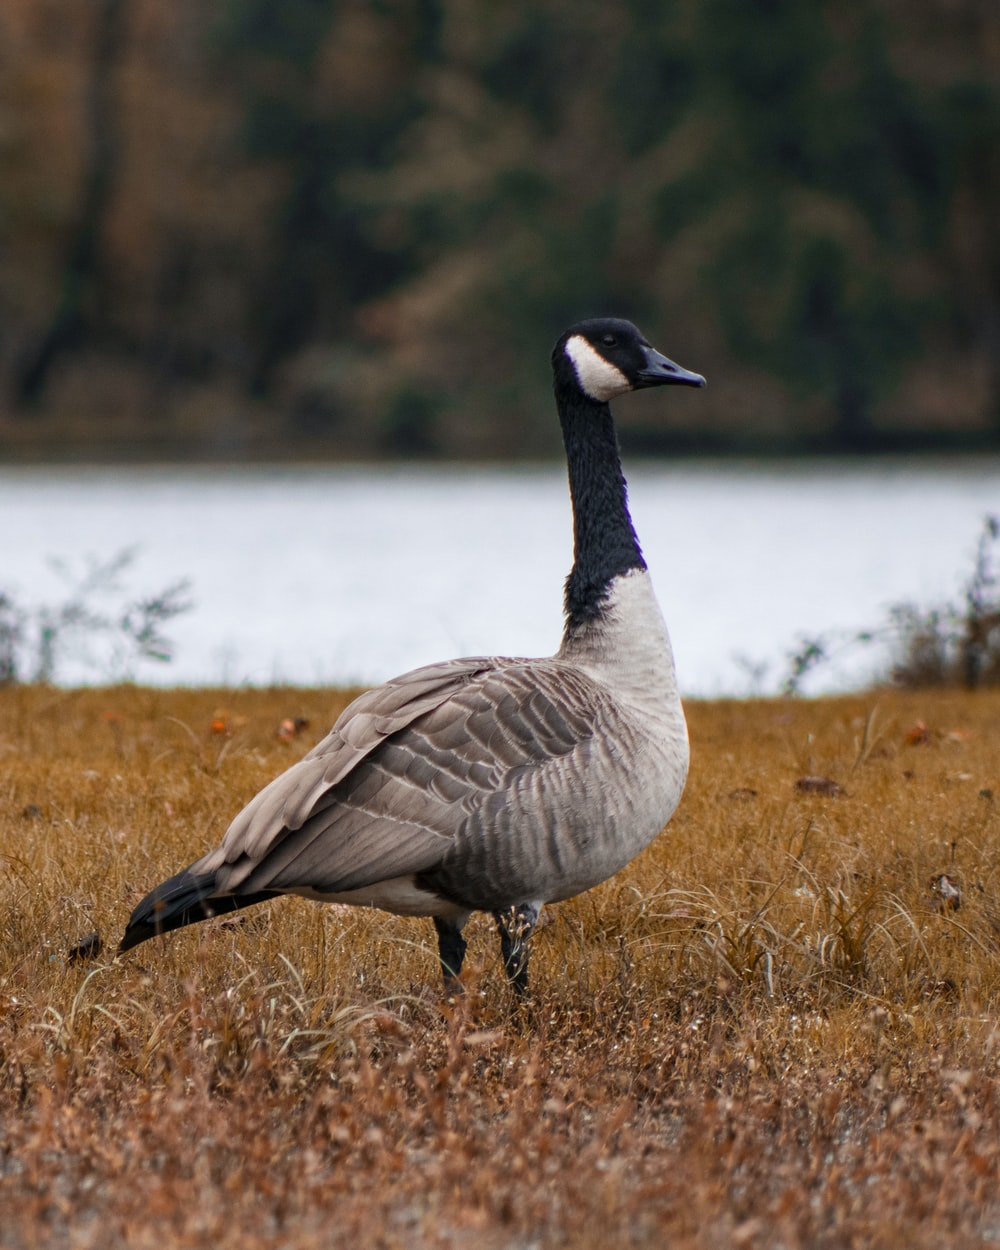 gray and black duck standing on grass field